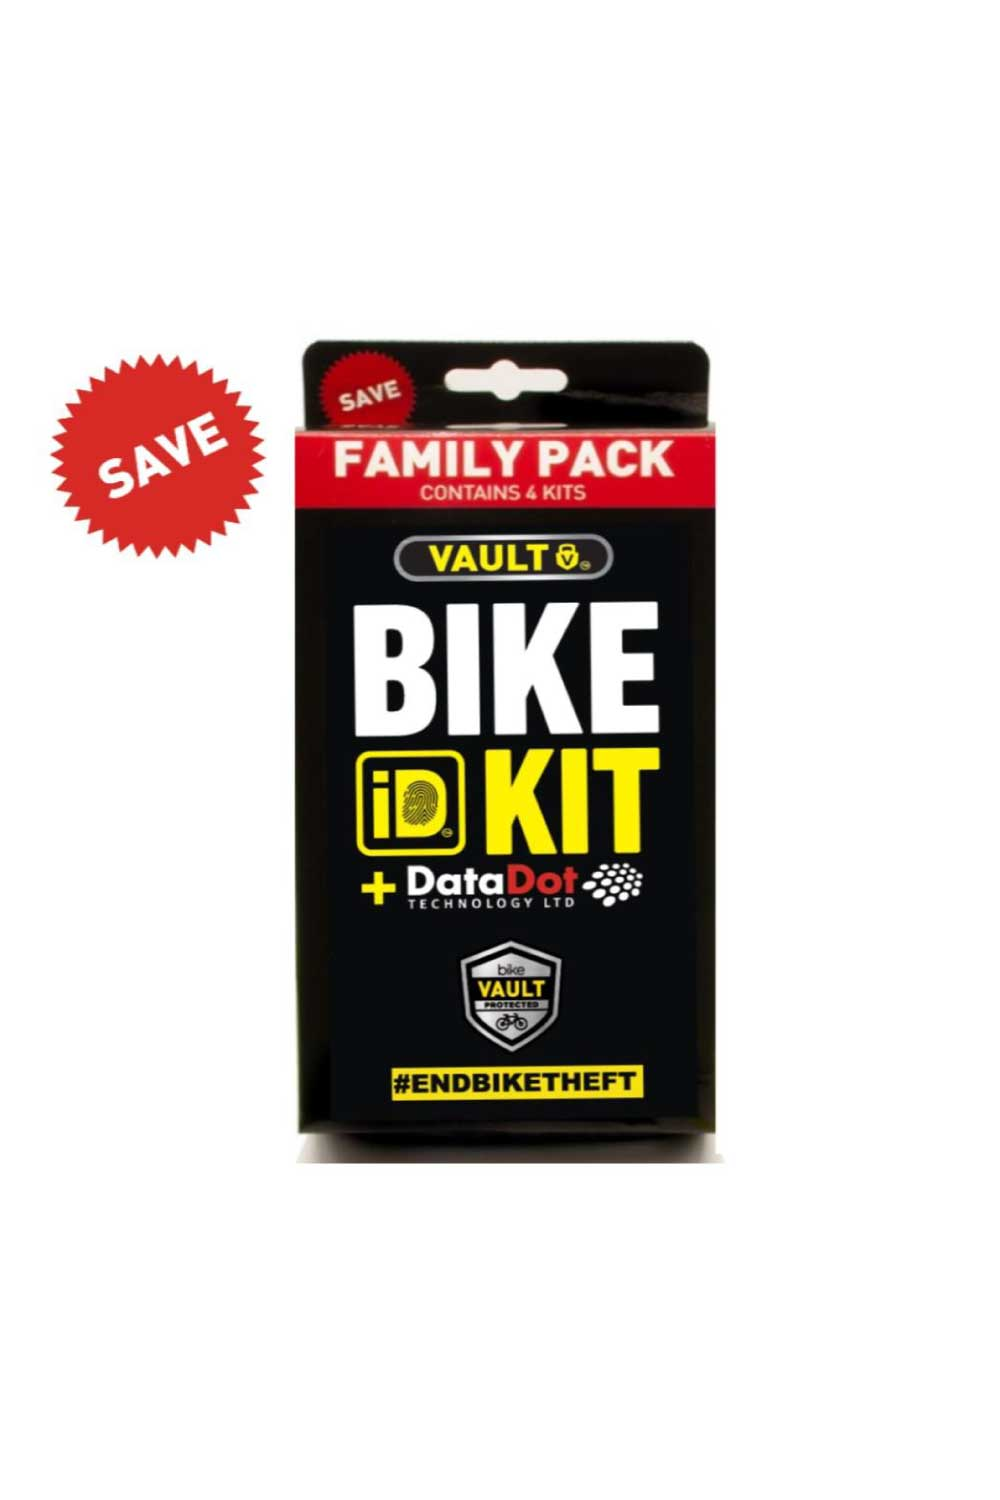 Vault Bike ID KIT+ Family Pack